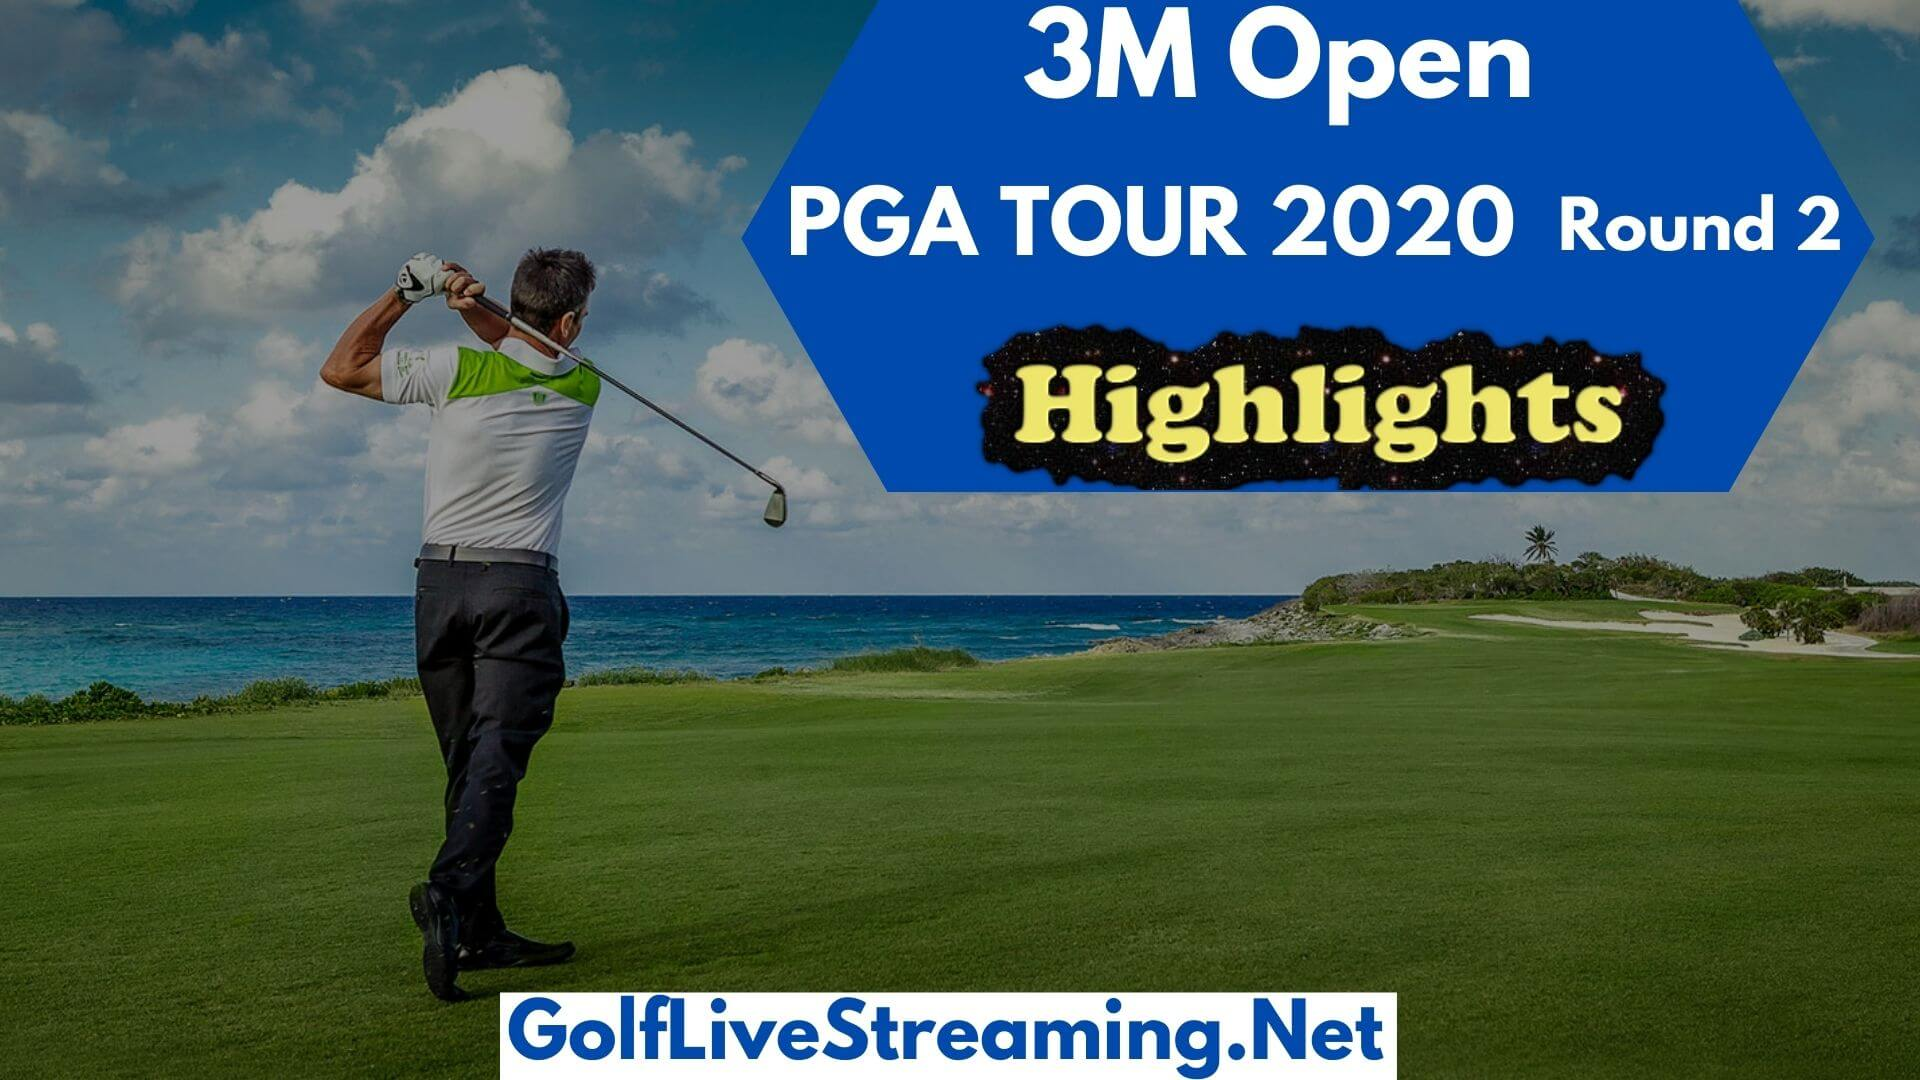 3M Open Rd 2 Highlights 2020 PGA TOUR